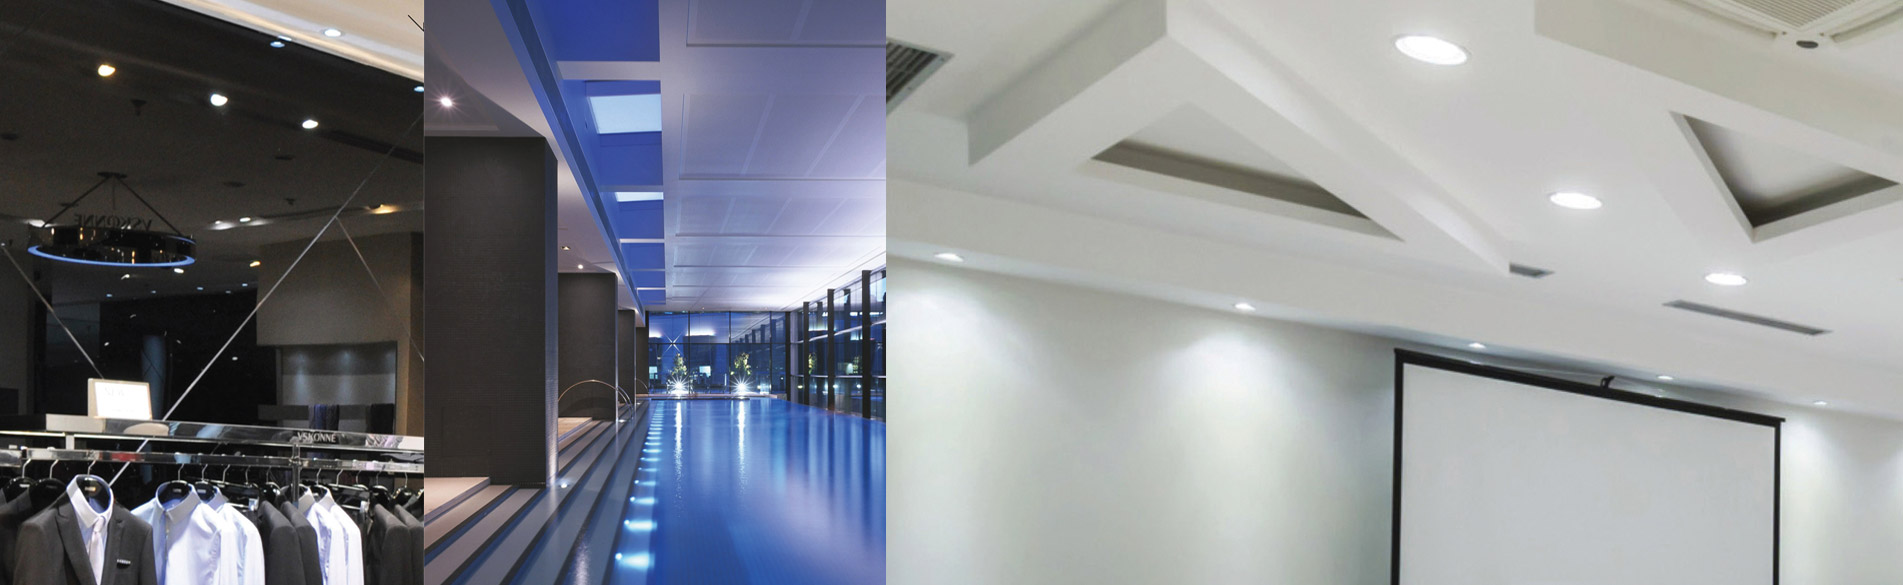 Interiores con iluminaci n en tecnolog a led blachere ictt for Led iluminacion interior